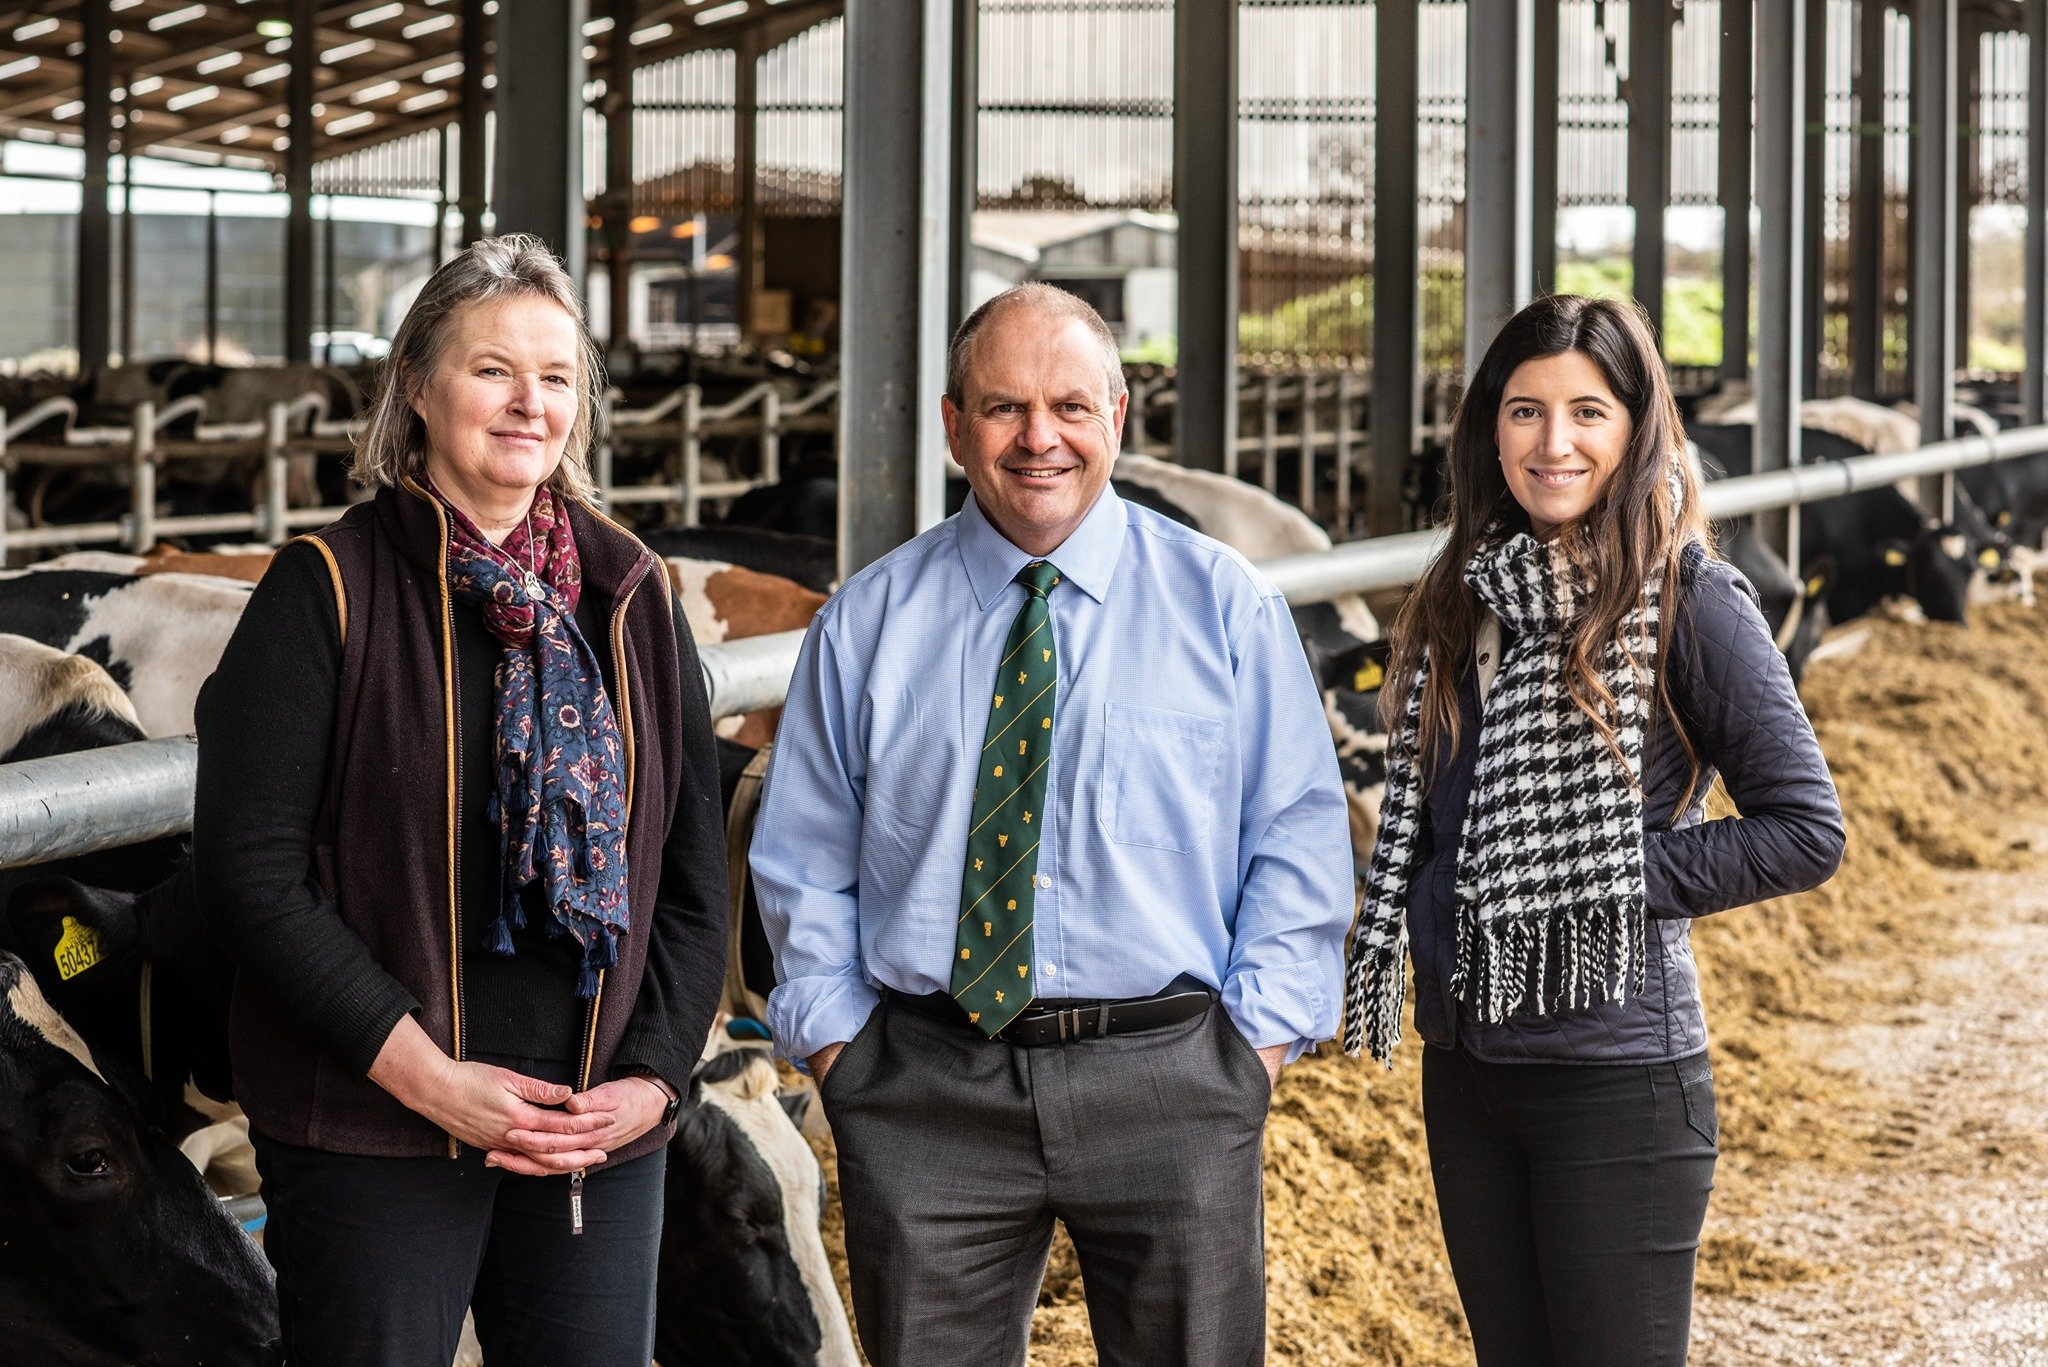 Team at Pat Tomlinson Accountancy stood together outside a cow shed